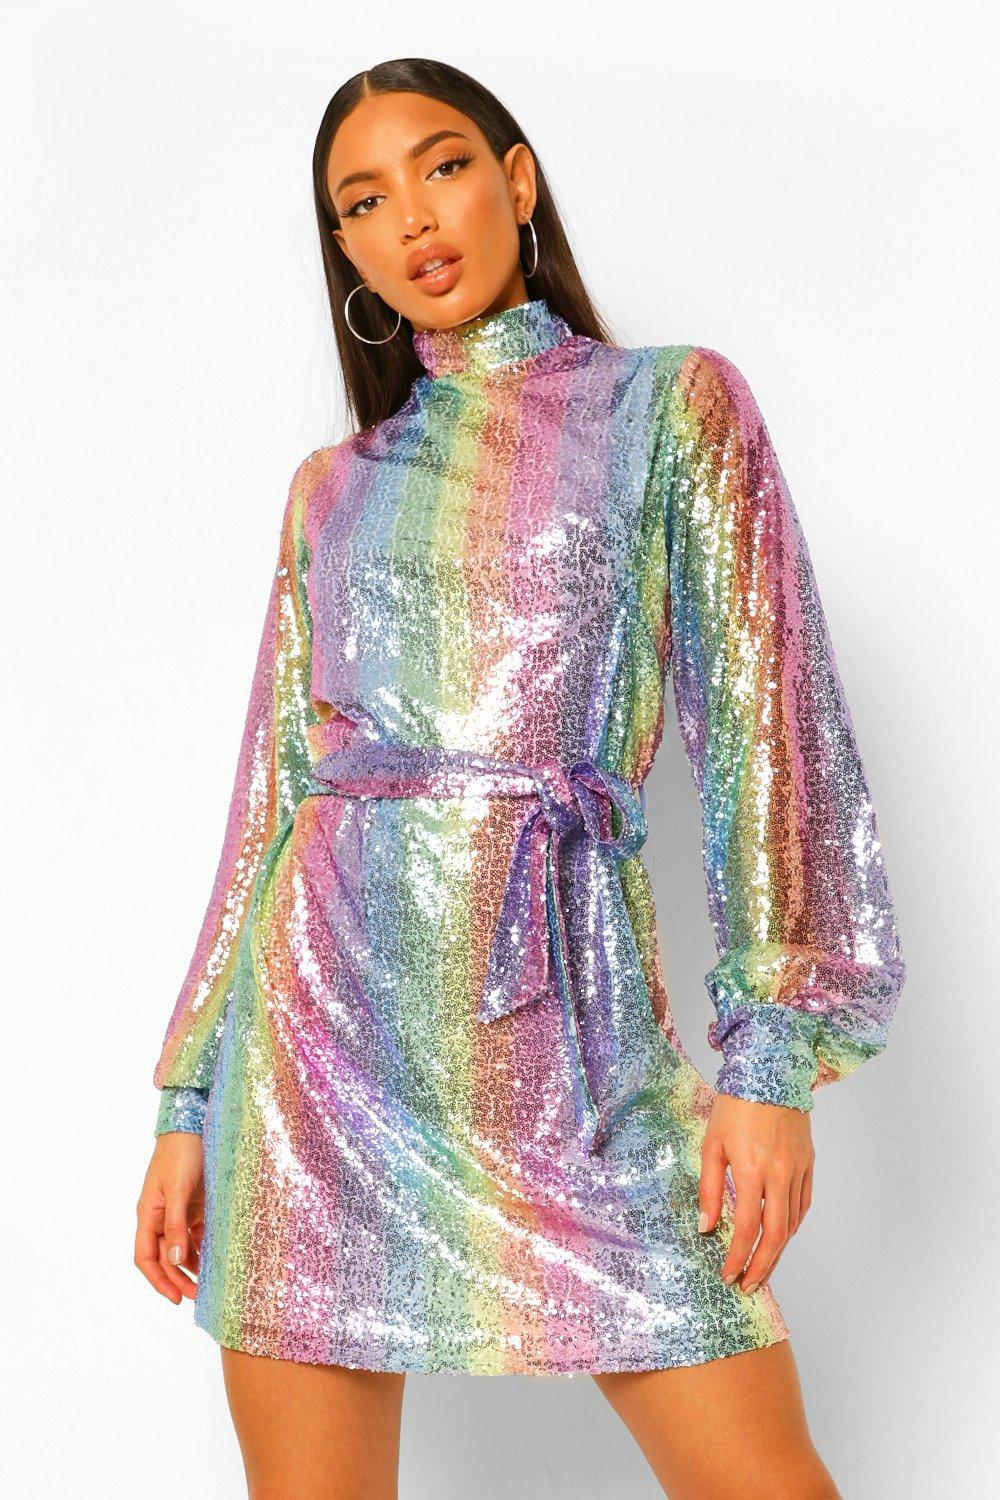 70s Prom, Formal, Evening, Party Dresses Womens Tall Rainbow Sequin Belted Balloon Sleeve Dress - Multi - 14 $70.00 AT vintagedancer.com